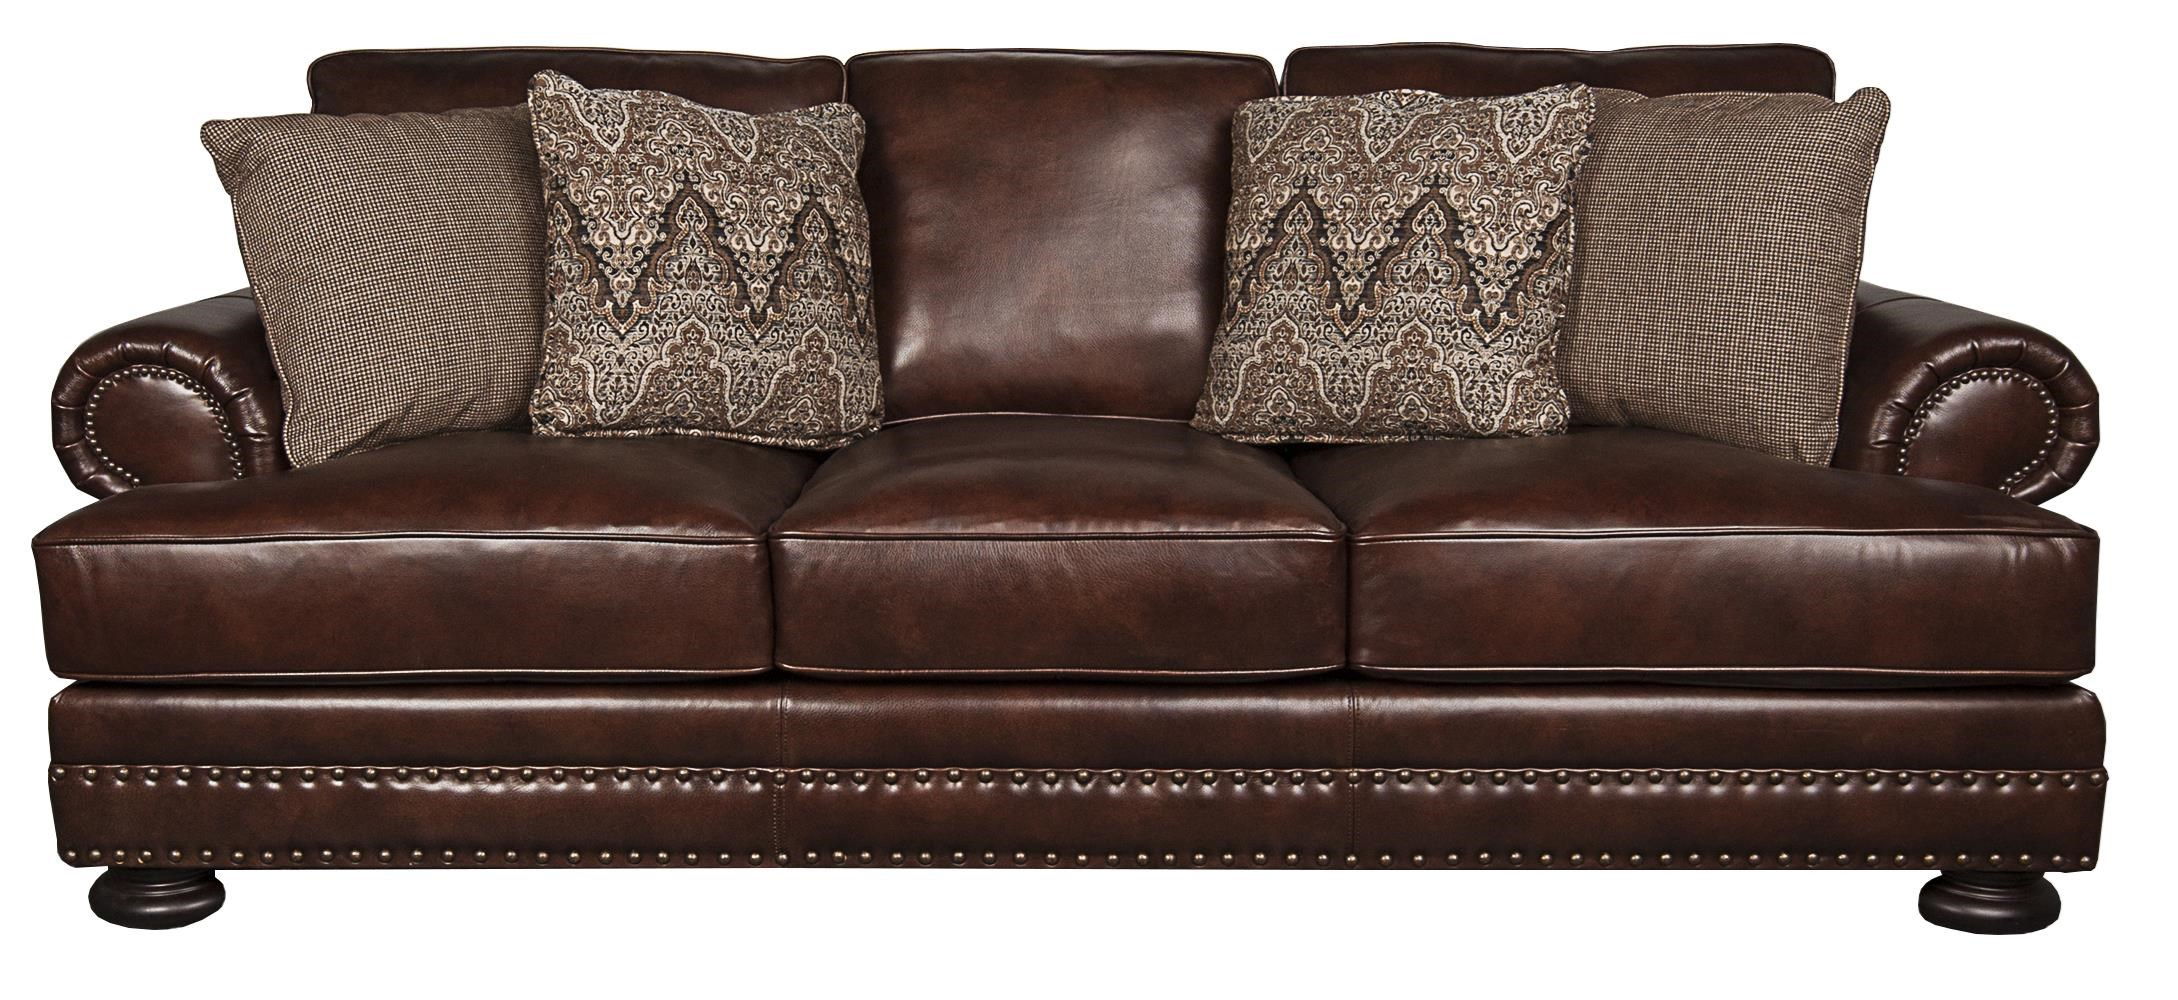 Foster leather sofa bernhardt furniture foster leather for Bernhardt furniture